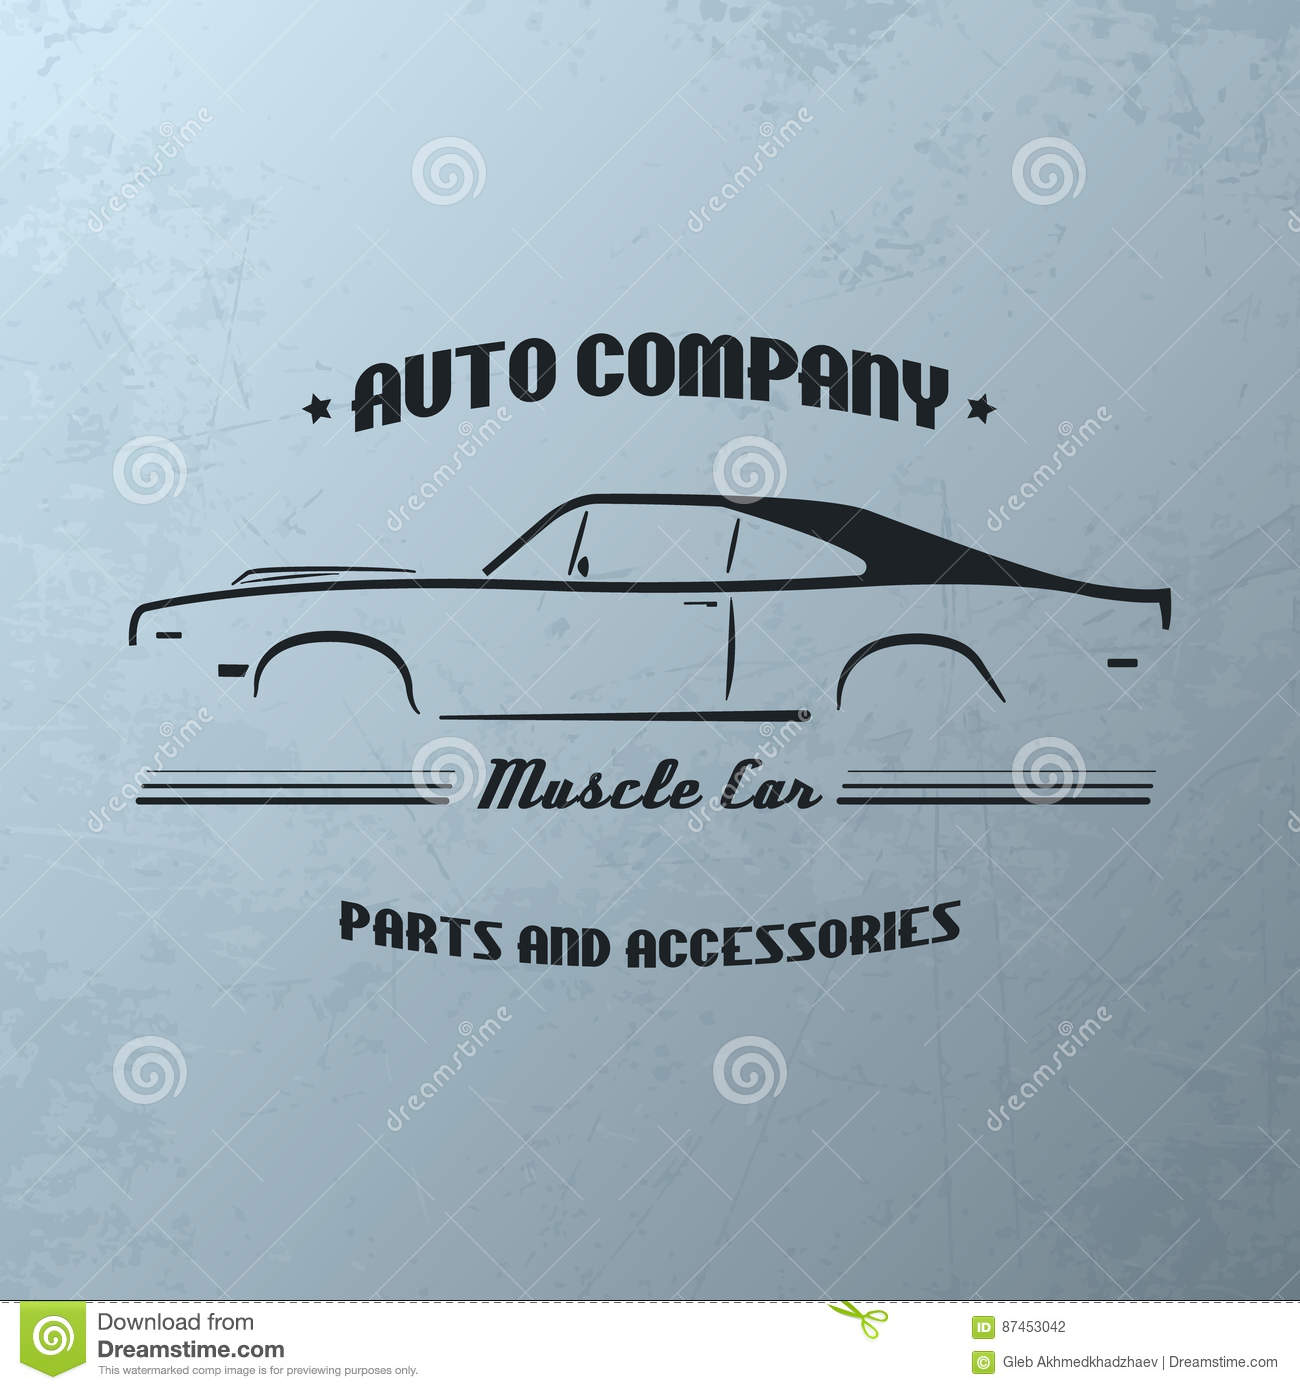 Vintage muscle car company logo design.